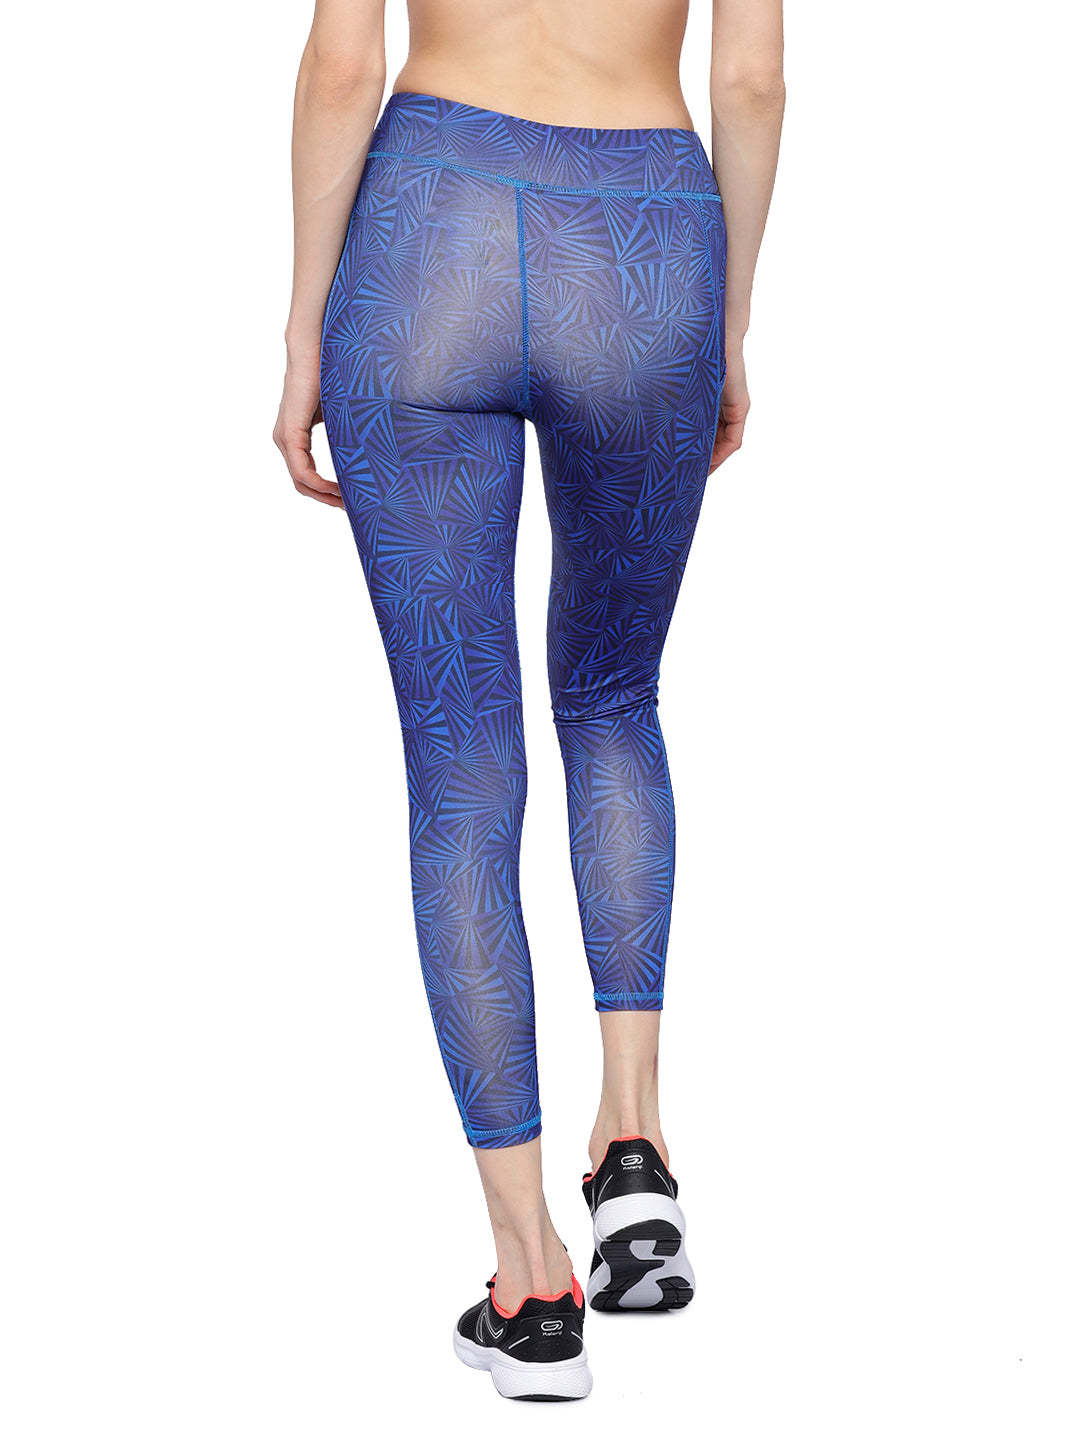 Piranha Women's Printed Yoga And Running Pants - YP182